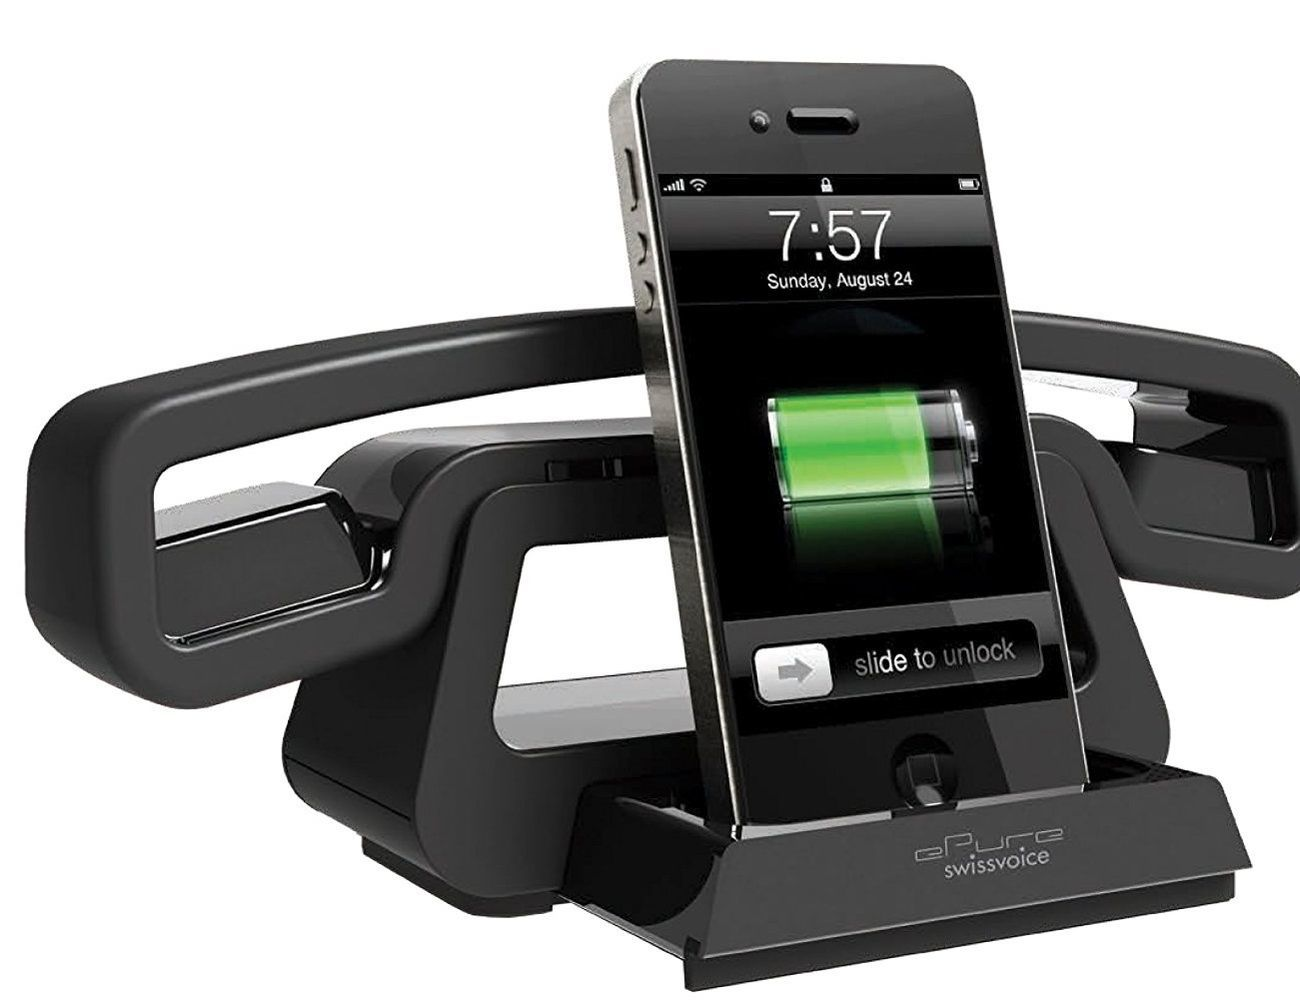 ePure Bluetooth Handset and Speakerphone for Smartphones